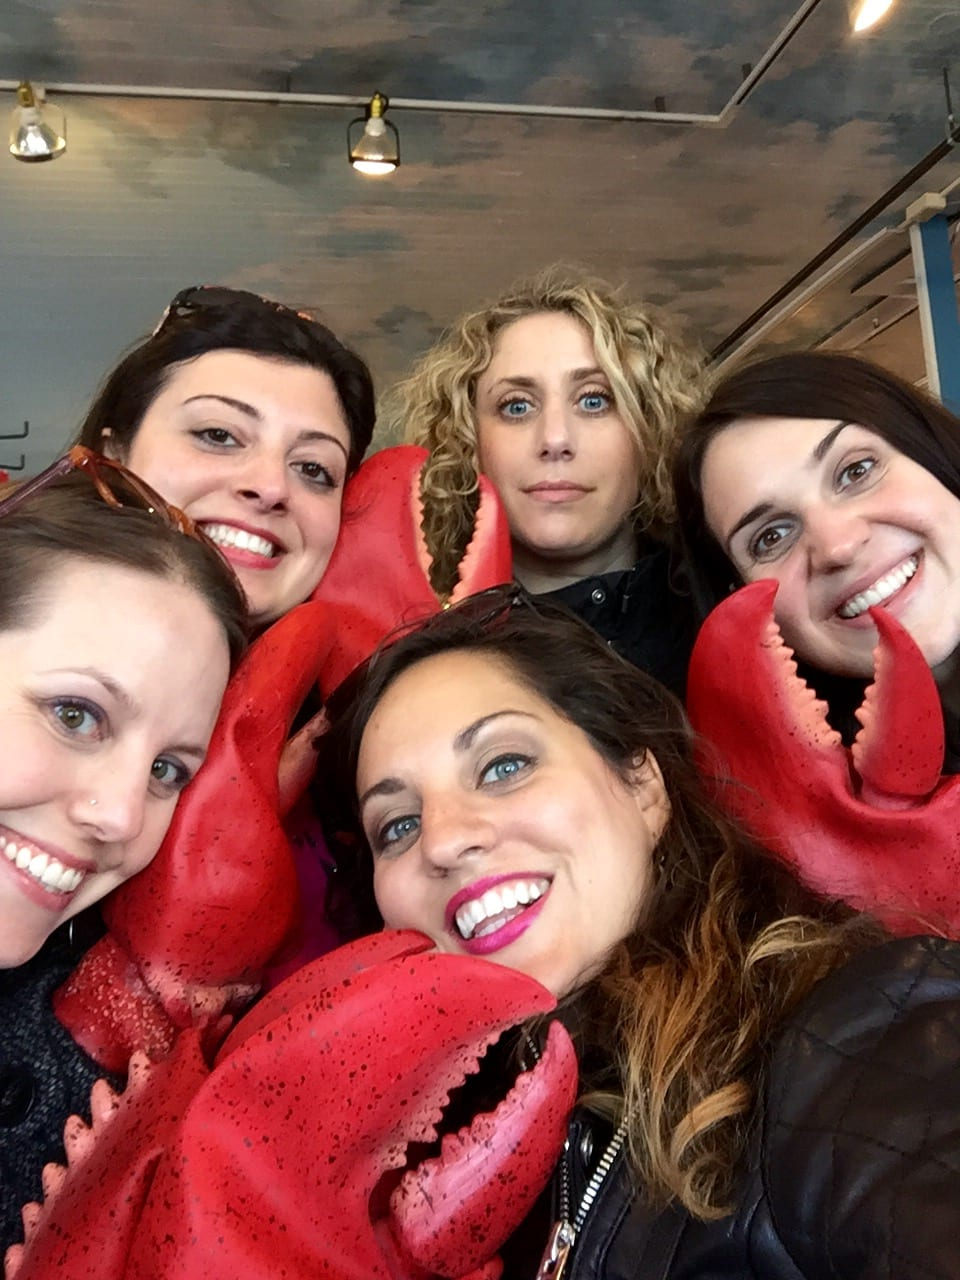 Lobster Girls in Portland